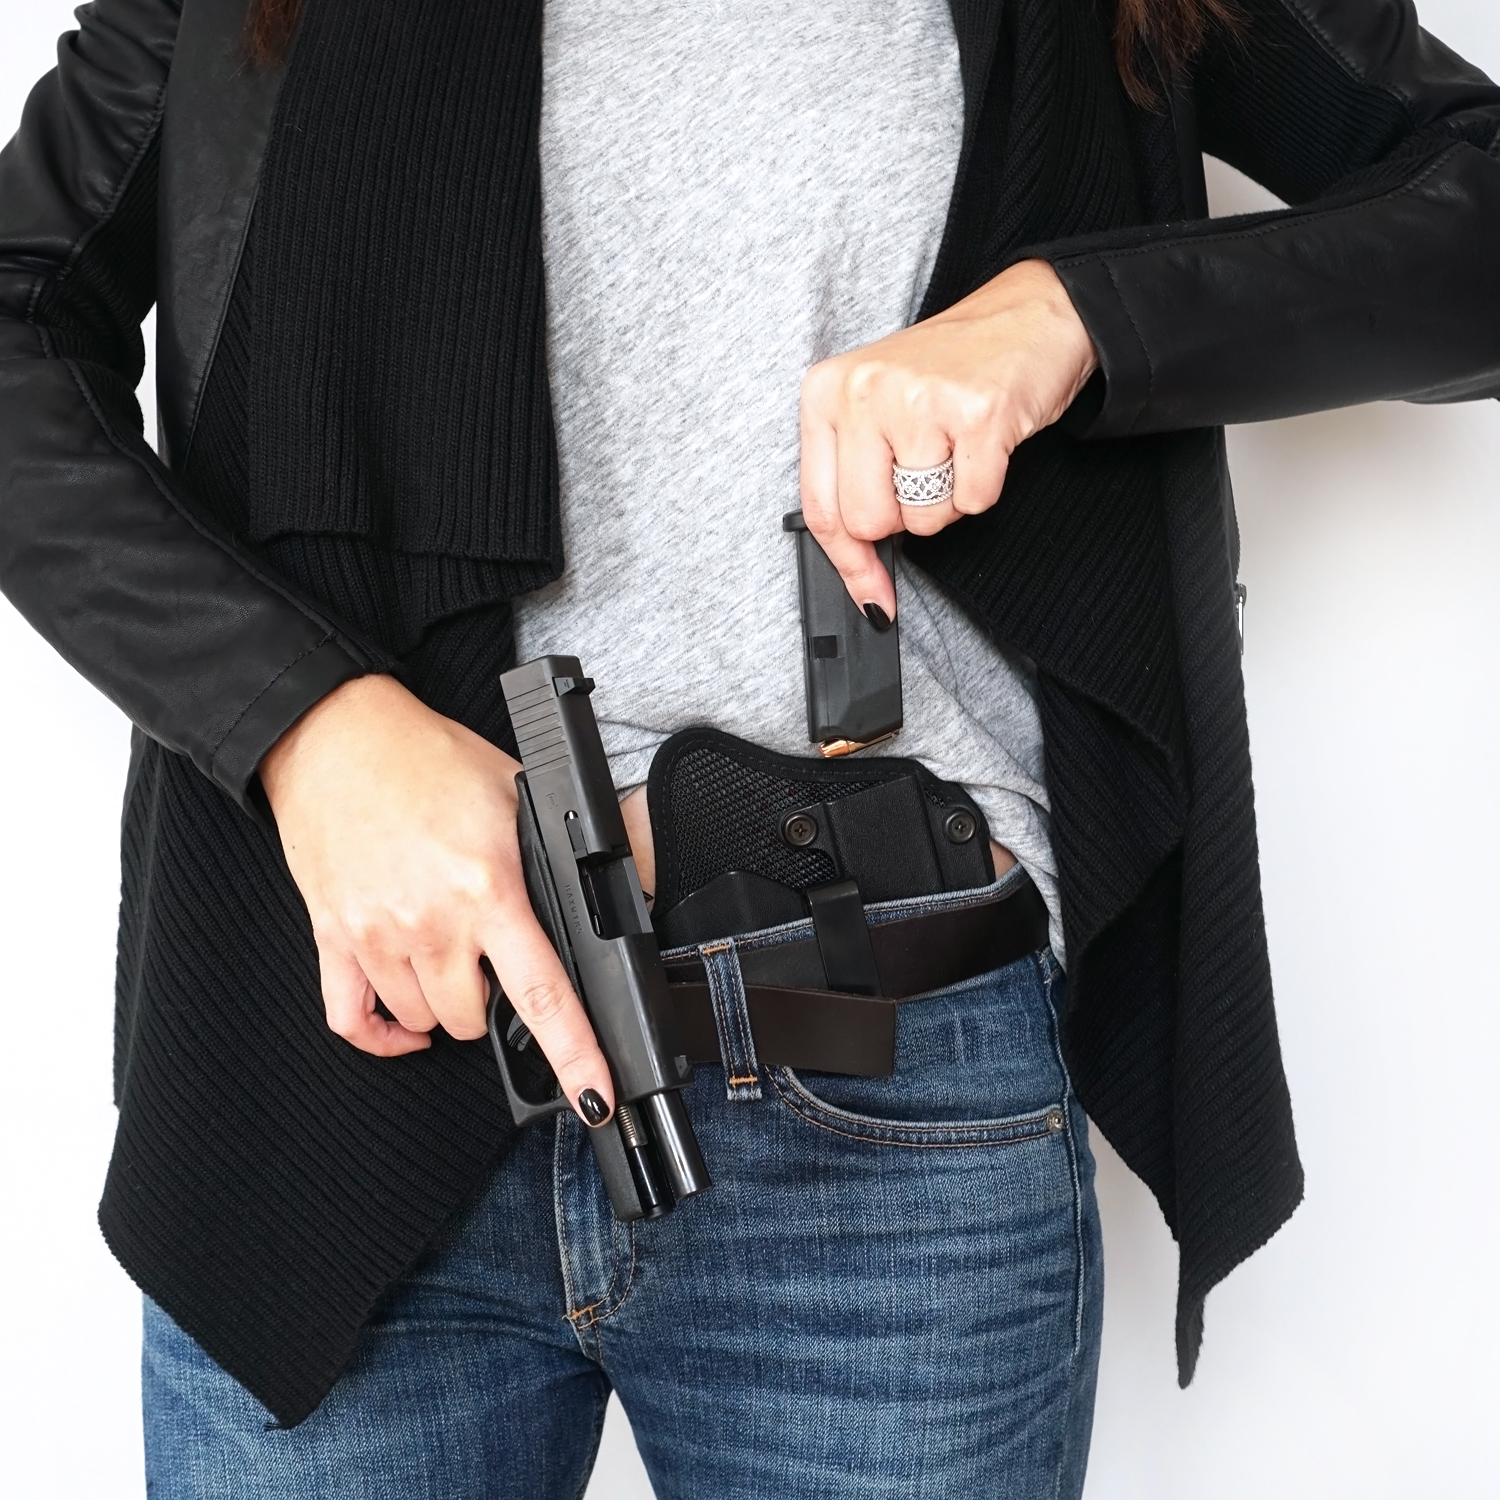 Glock 43 Spare Mag Concealed Carry